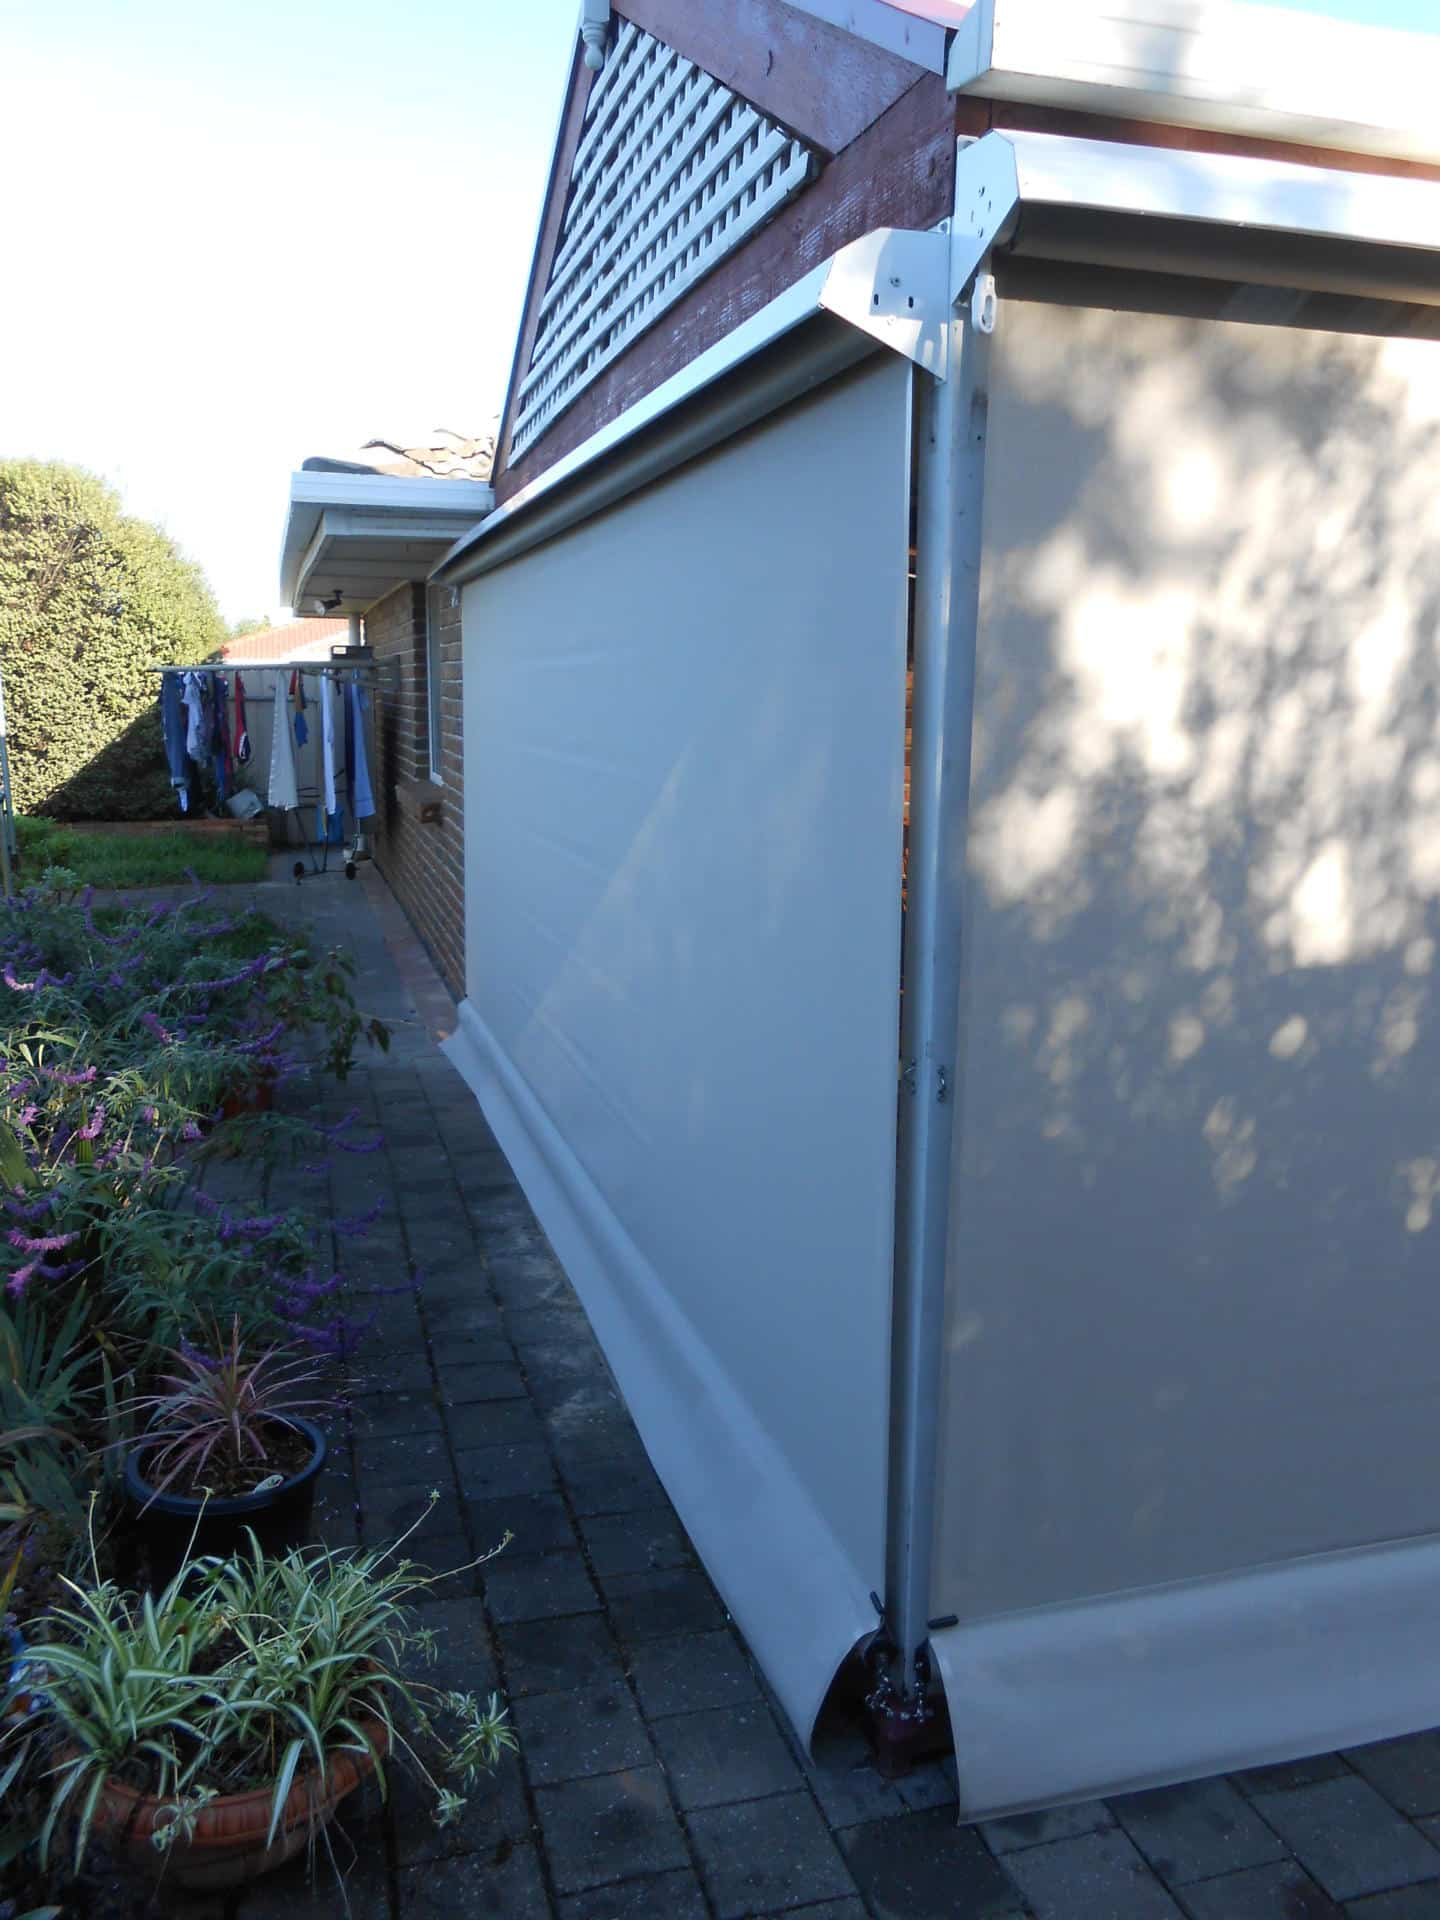 No longer blinded by the sun - See our Facebook competition winner's new set of outdoor blinds, Australian Outdoor Living.